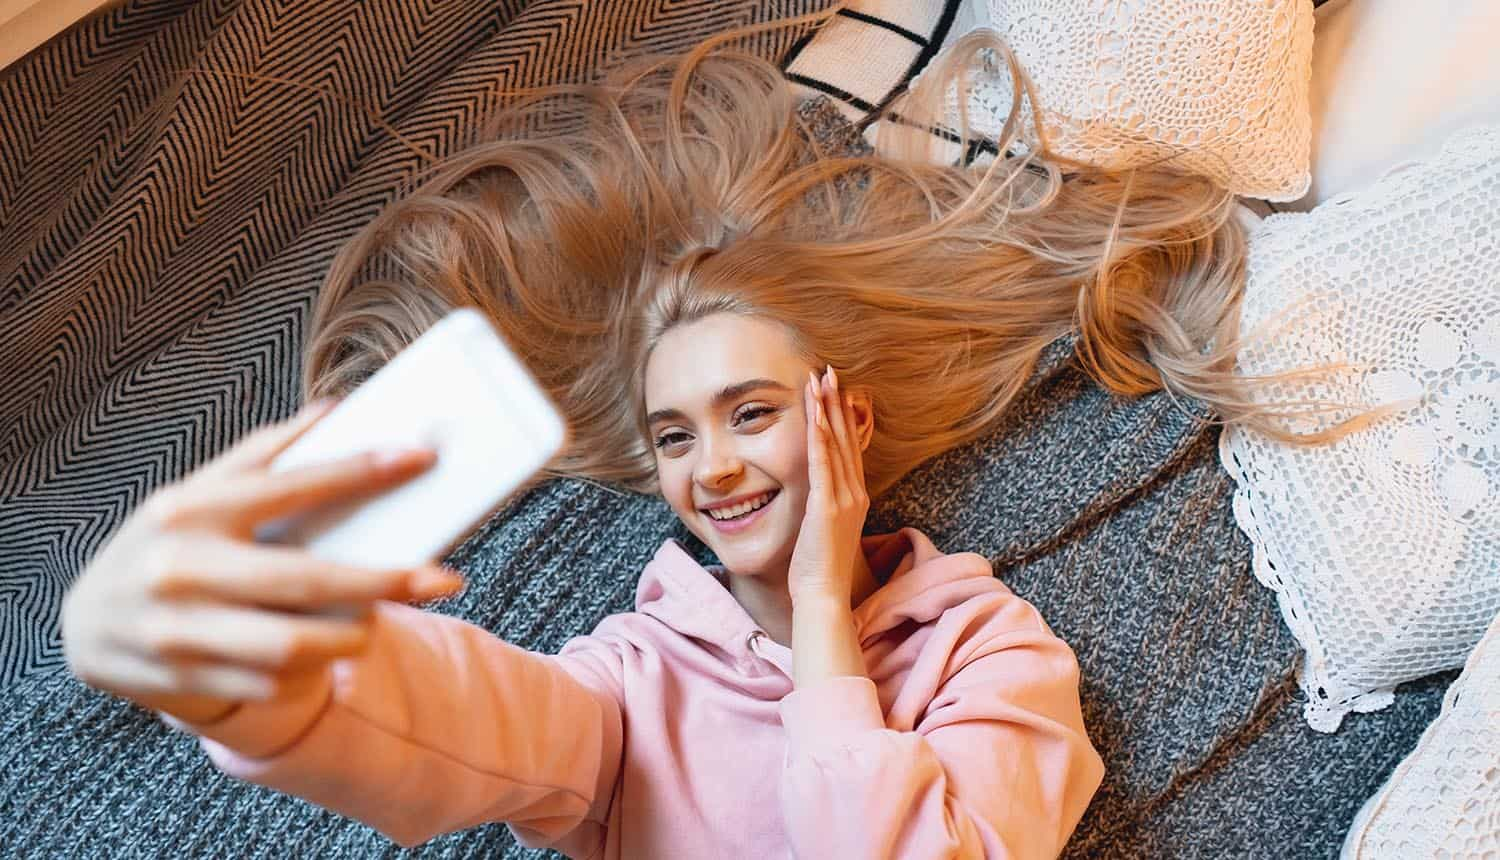 Young girl taking selfie showing FaceApp privacy seen as the type of drama we've come to expect from social media companies